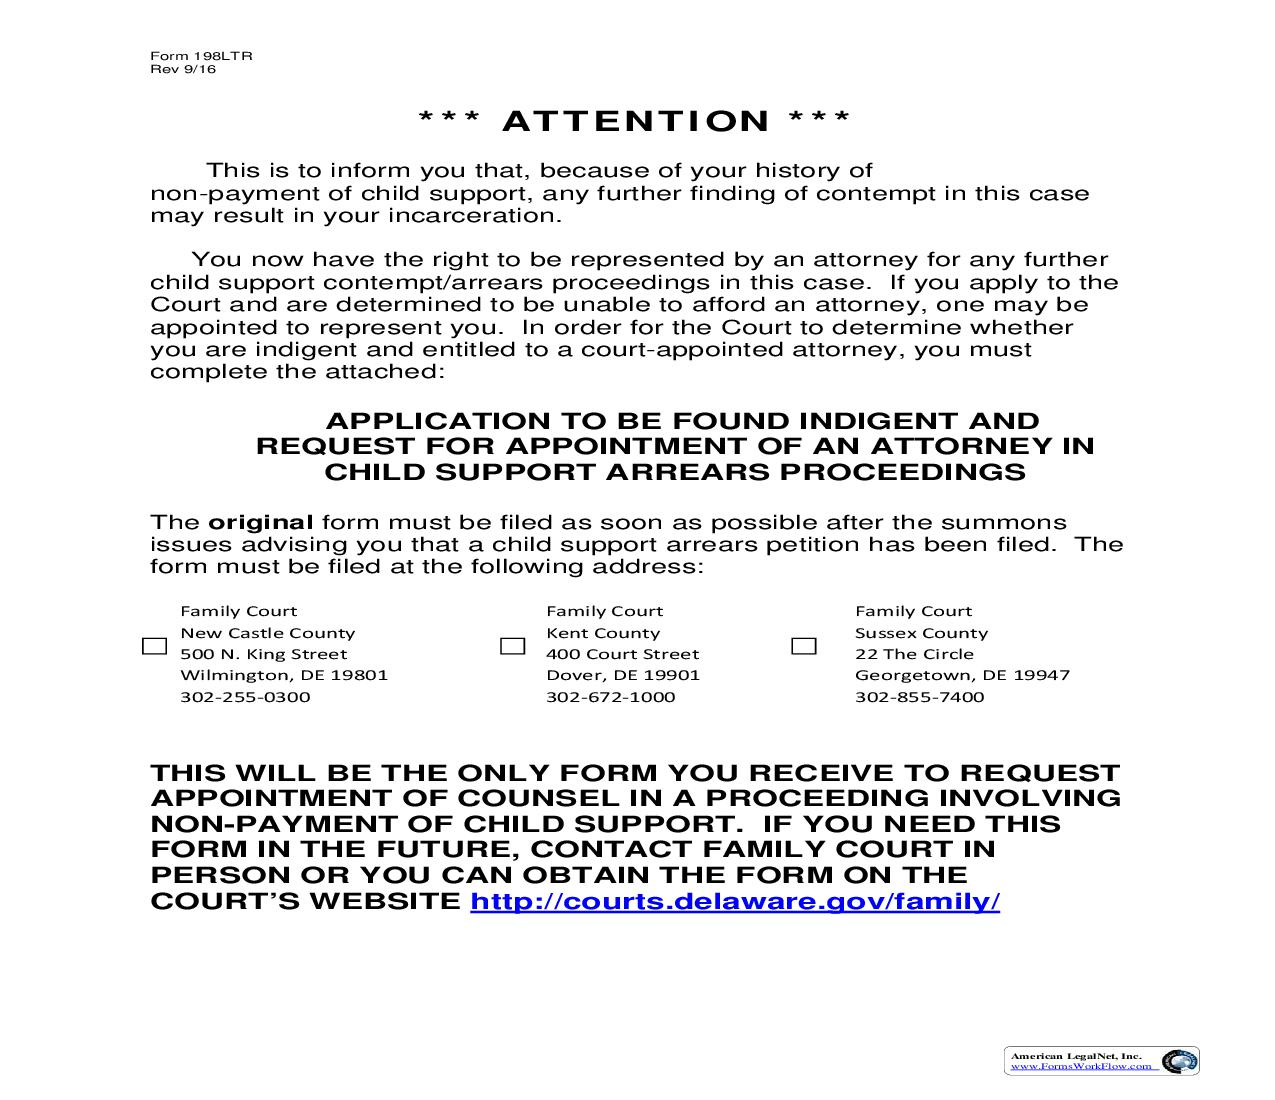 Attention Letter-Application To Be Found Indignet {198LTR}   Pdf Fpdf Doc Docx   Delaware